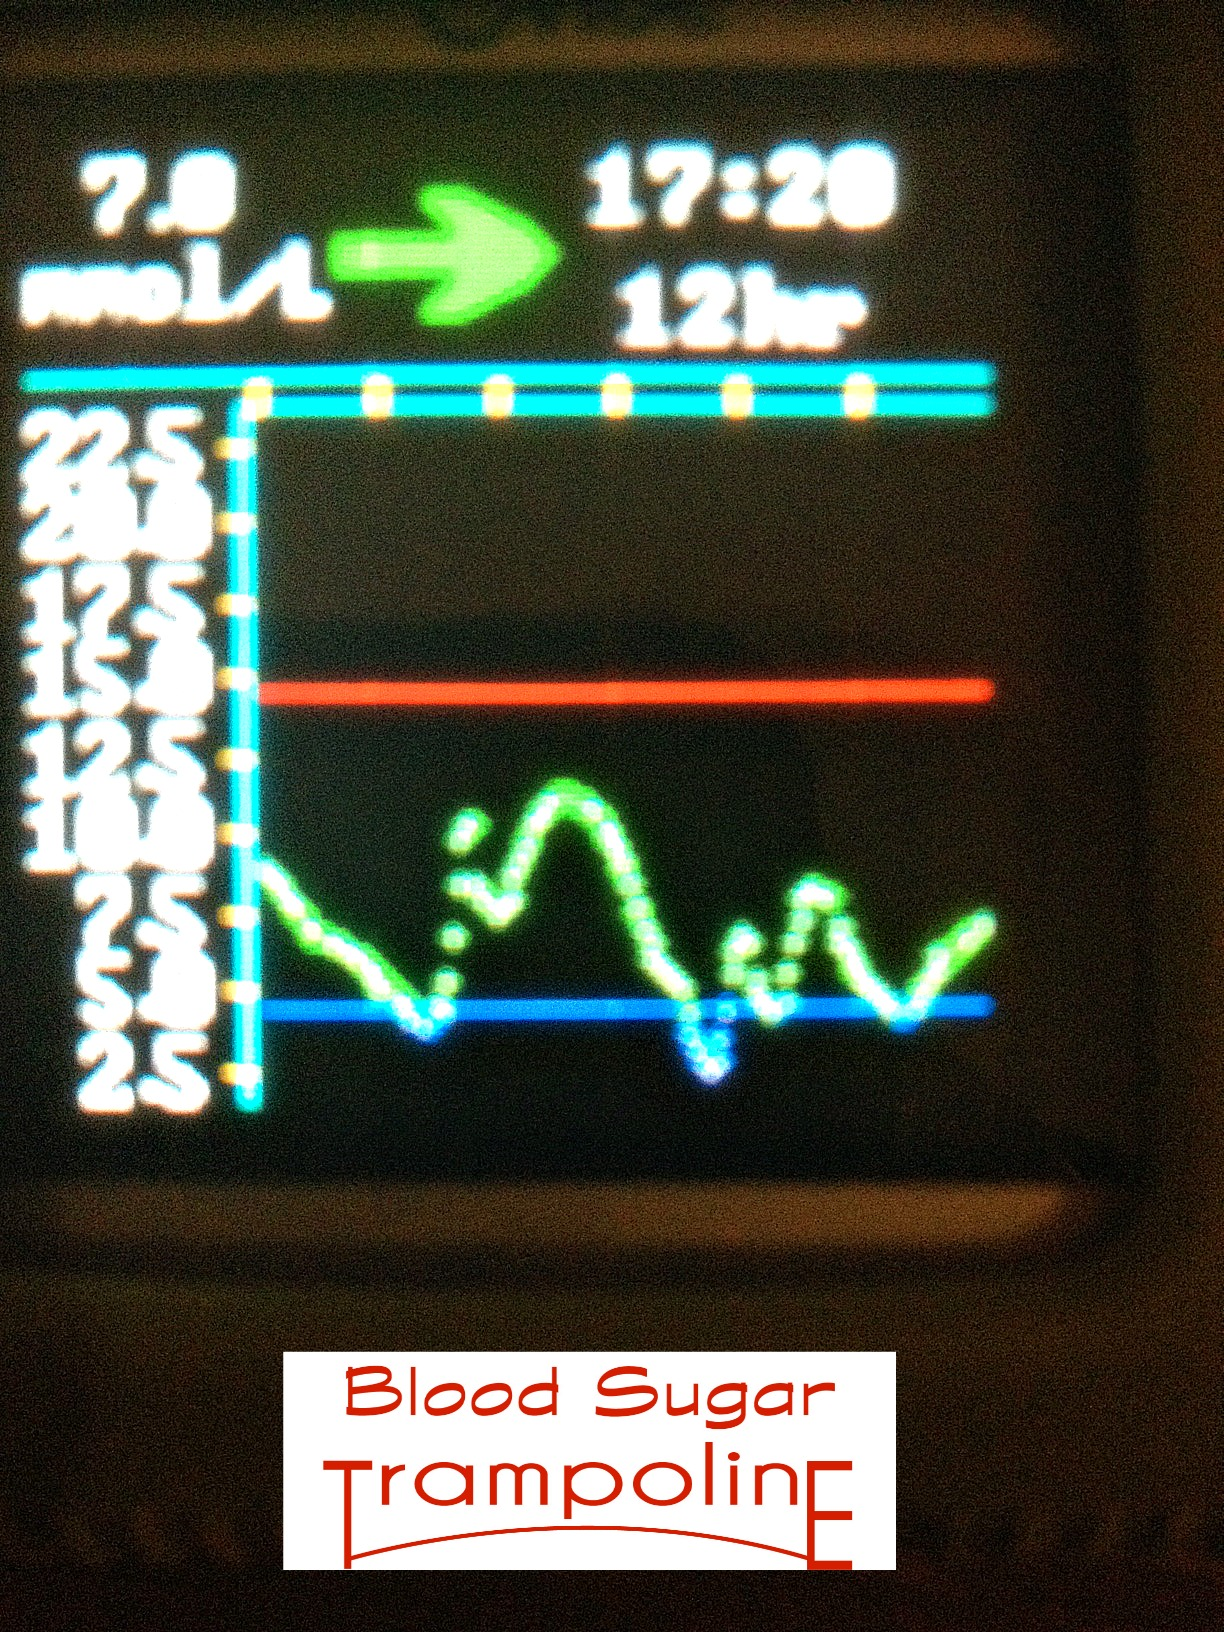 Bouncing on the Blood Sugar Trampoline